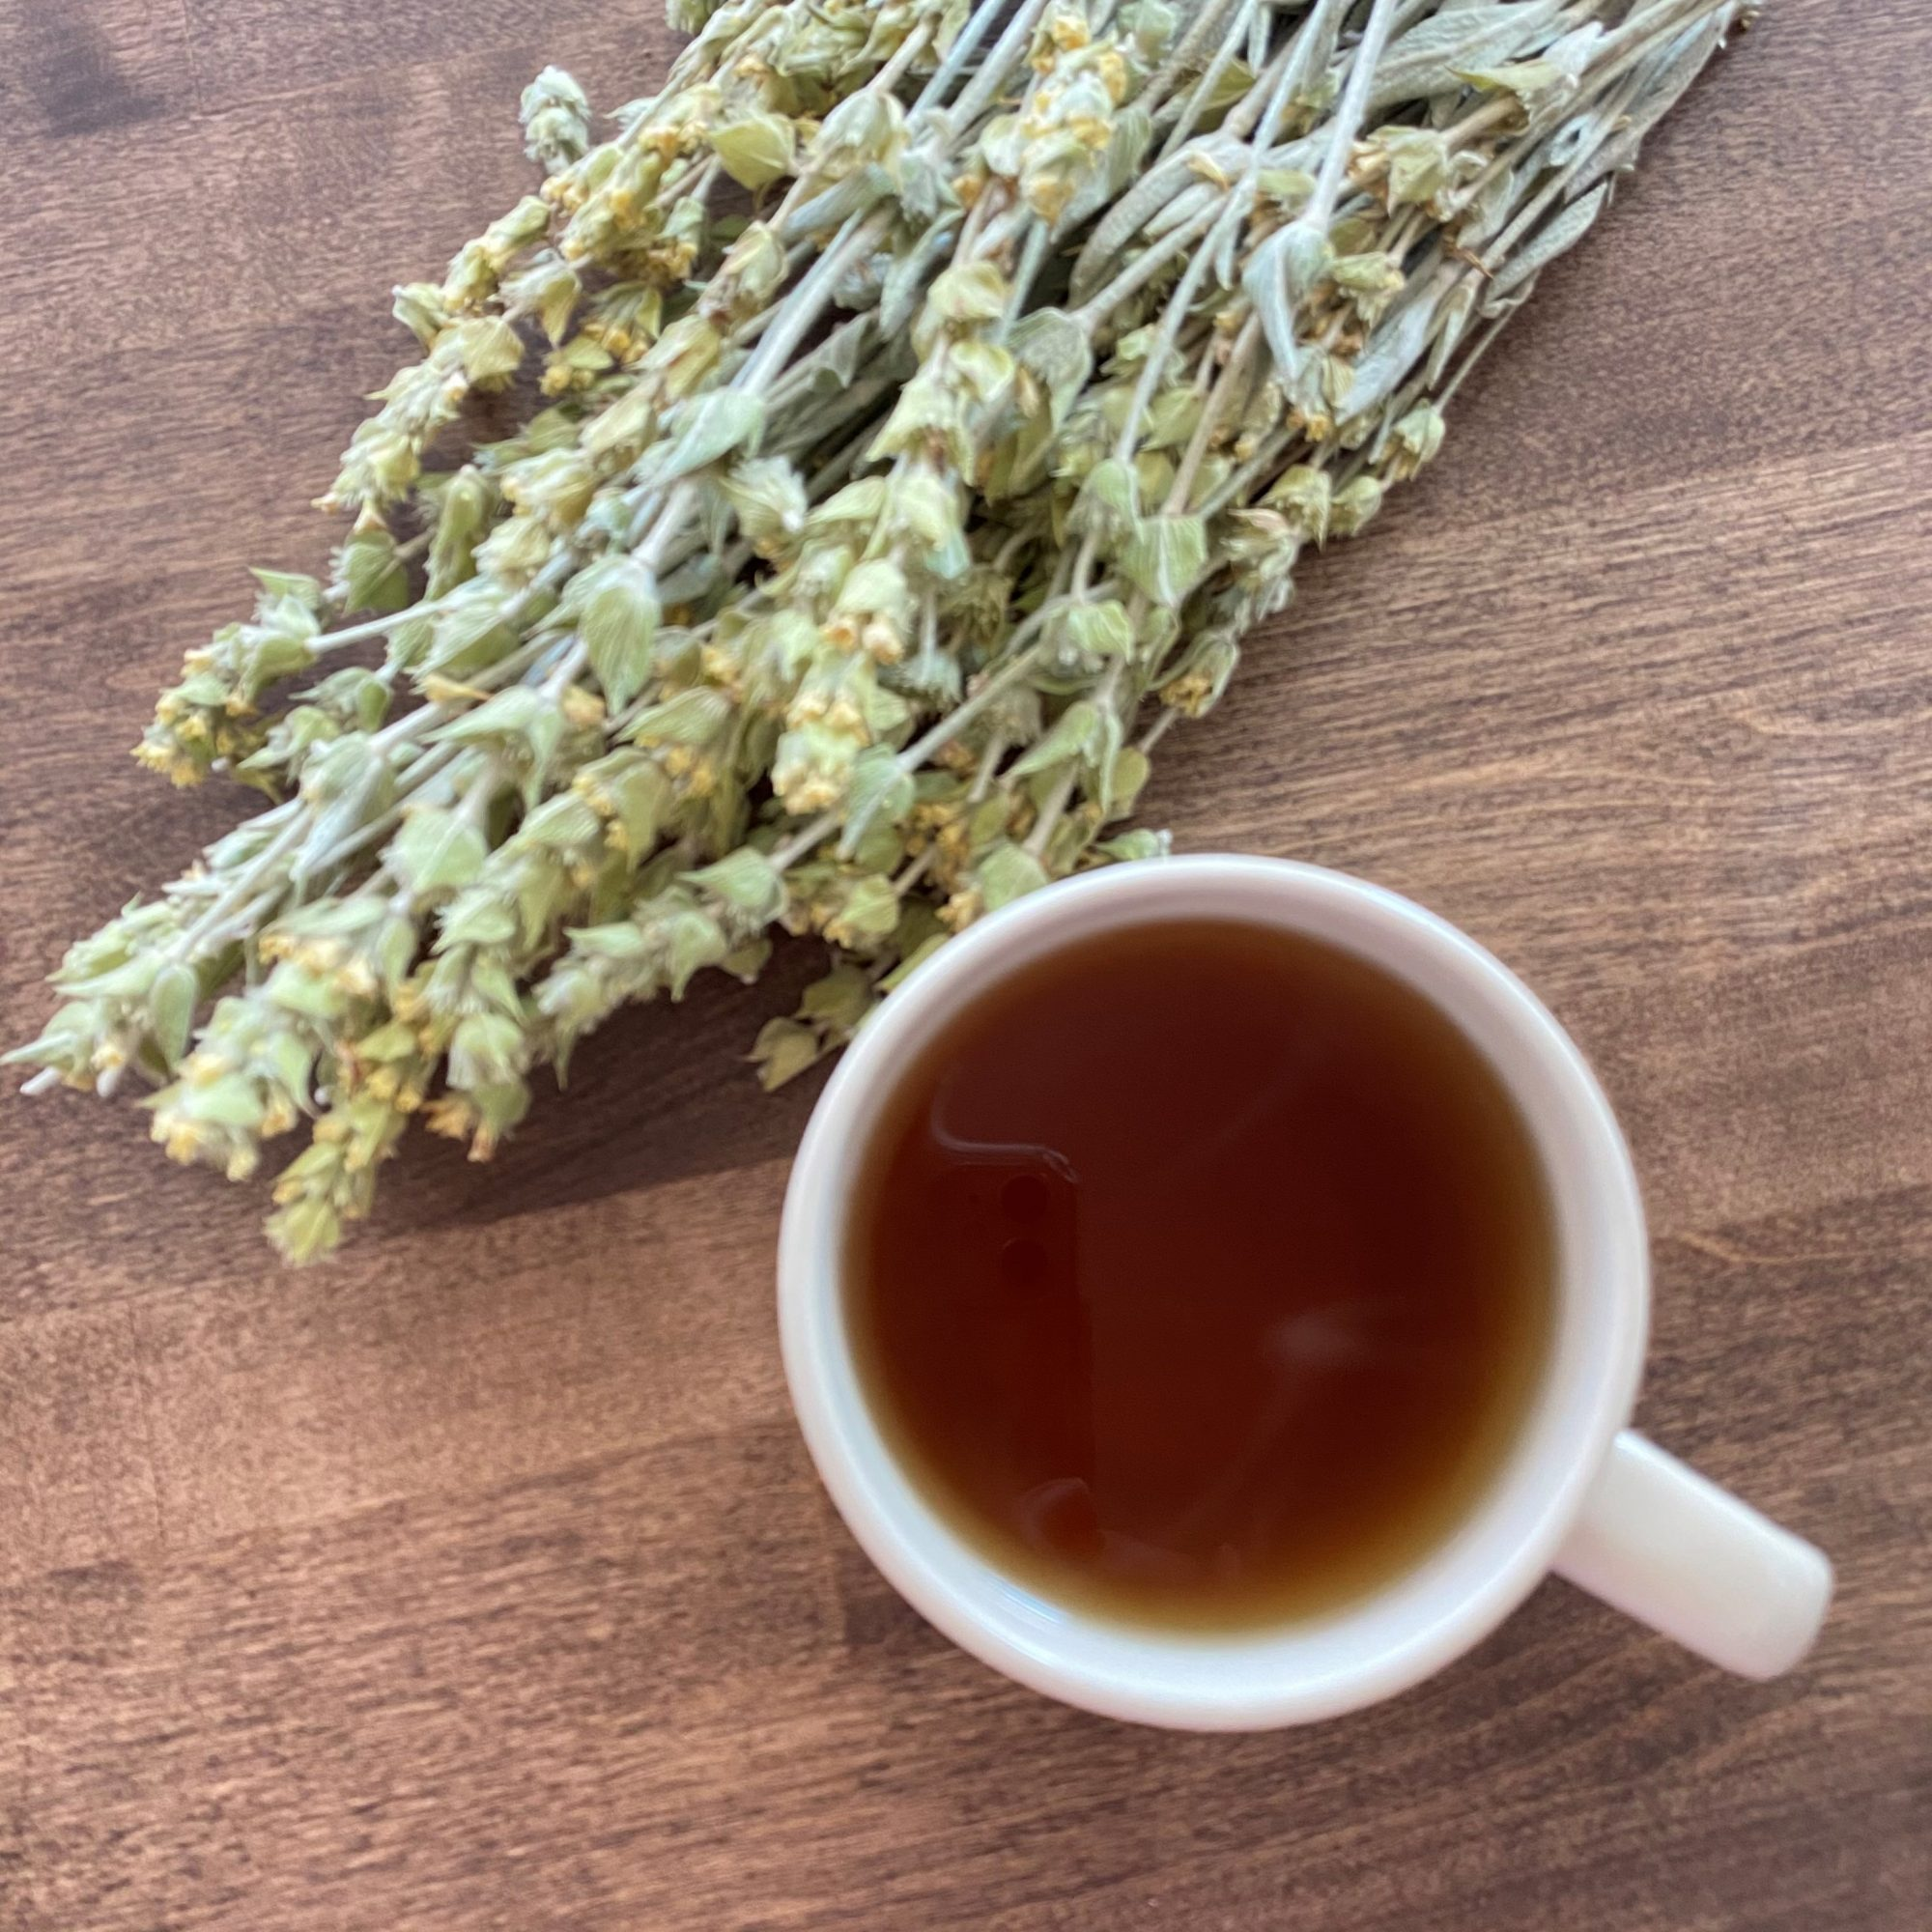 a mug of mountain tea with the dried flowers and stems of sideritis on the side